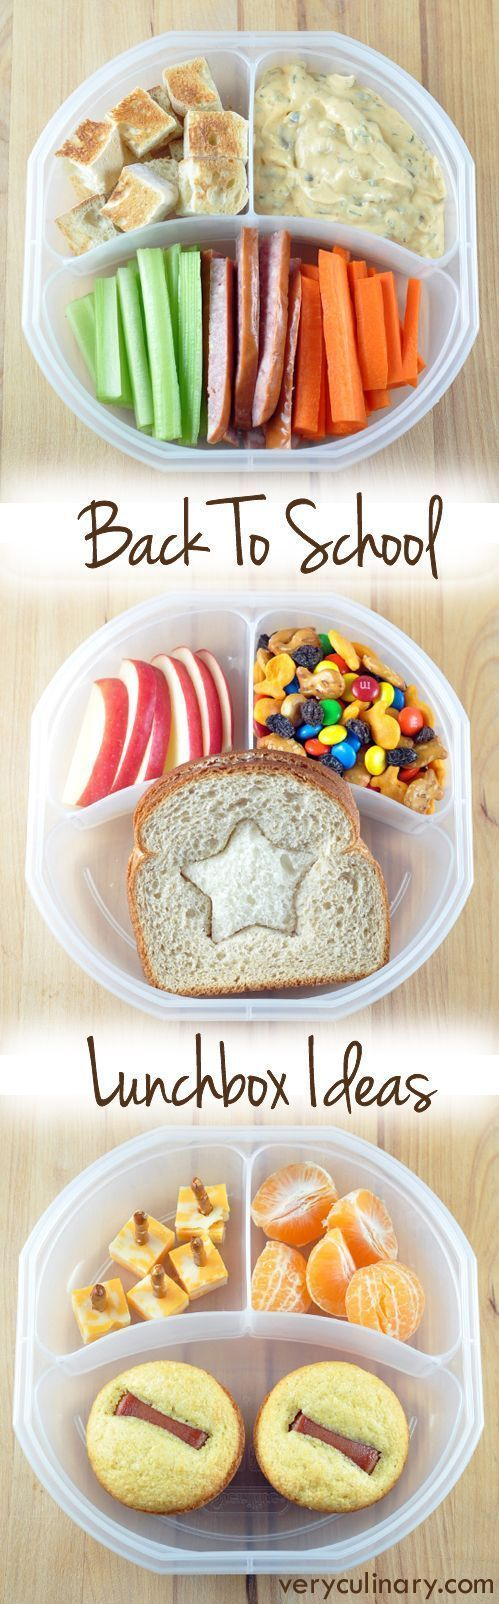 Get your kid excited to eat with these fun and delicious back to school lunchbox ideas!